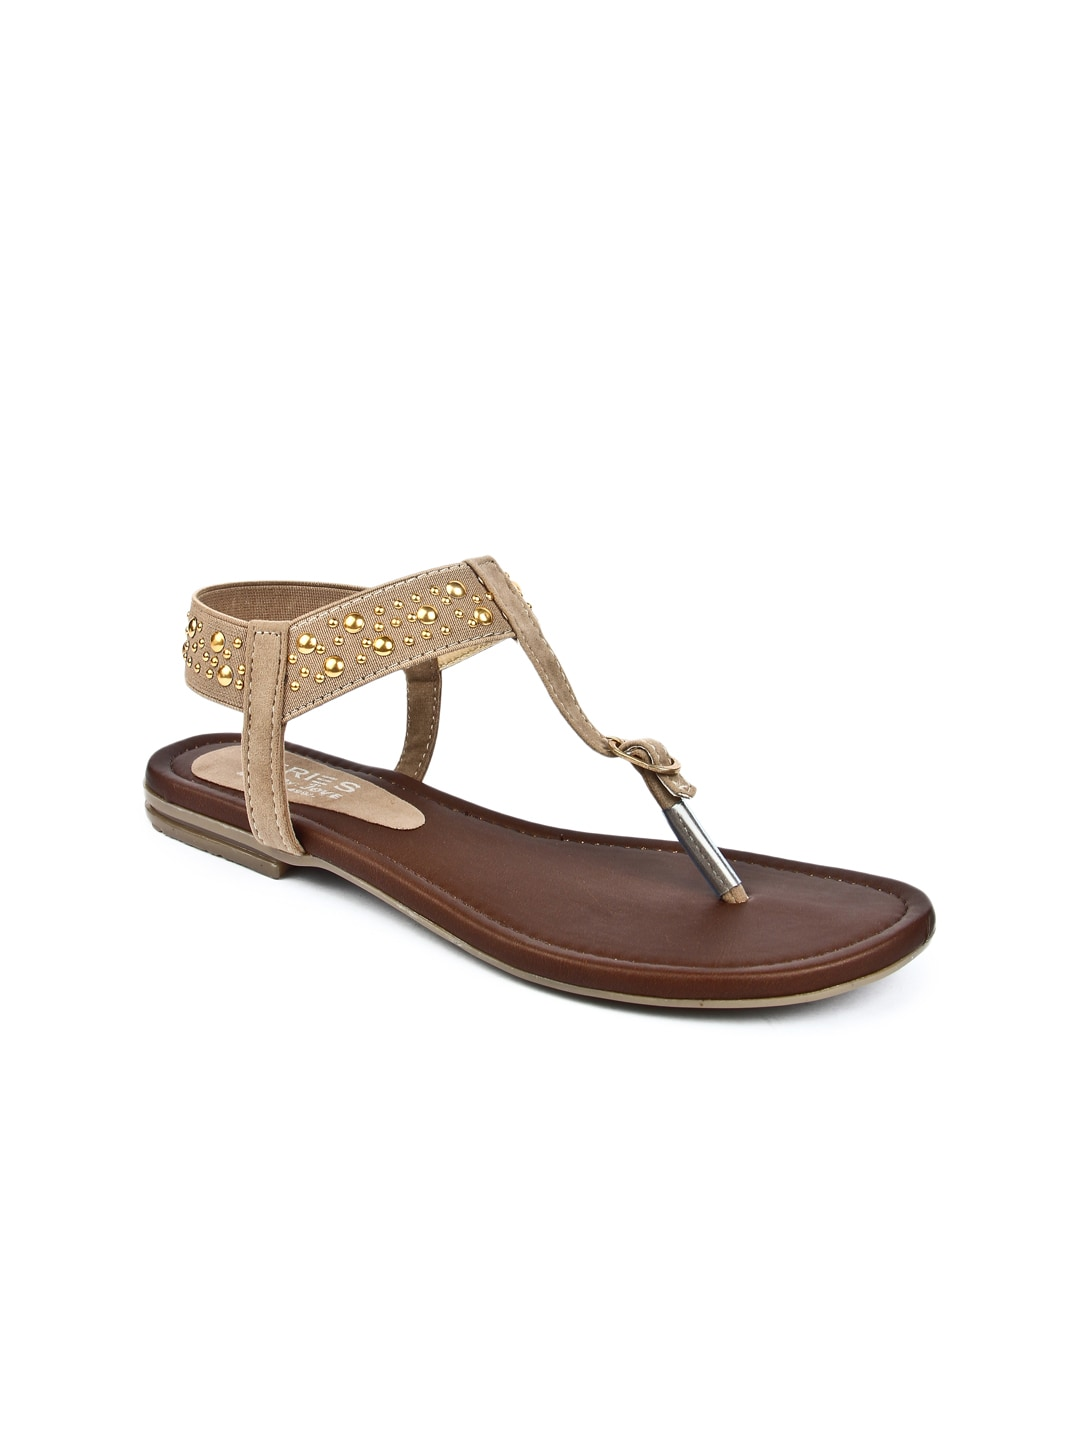 Jove Series By Jove Women Beige & Gold-Toned Flats (Beige\/Sand\/Tan)